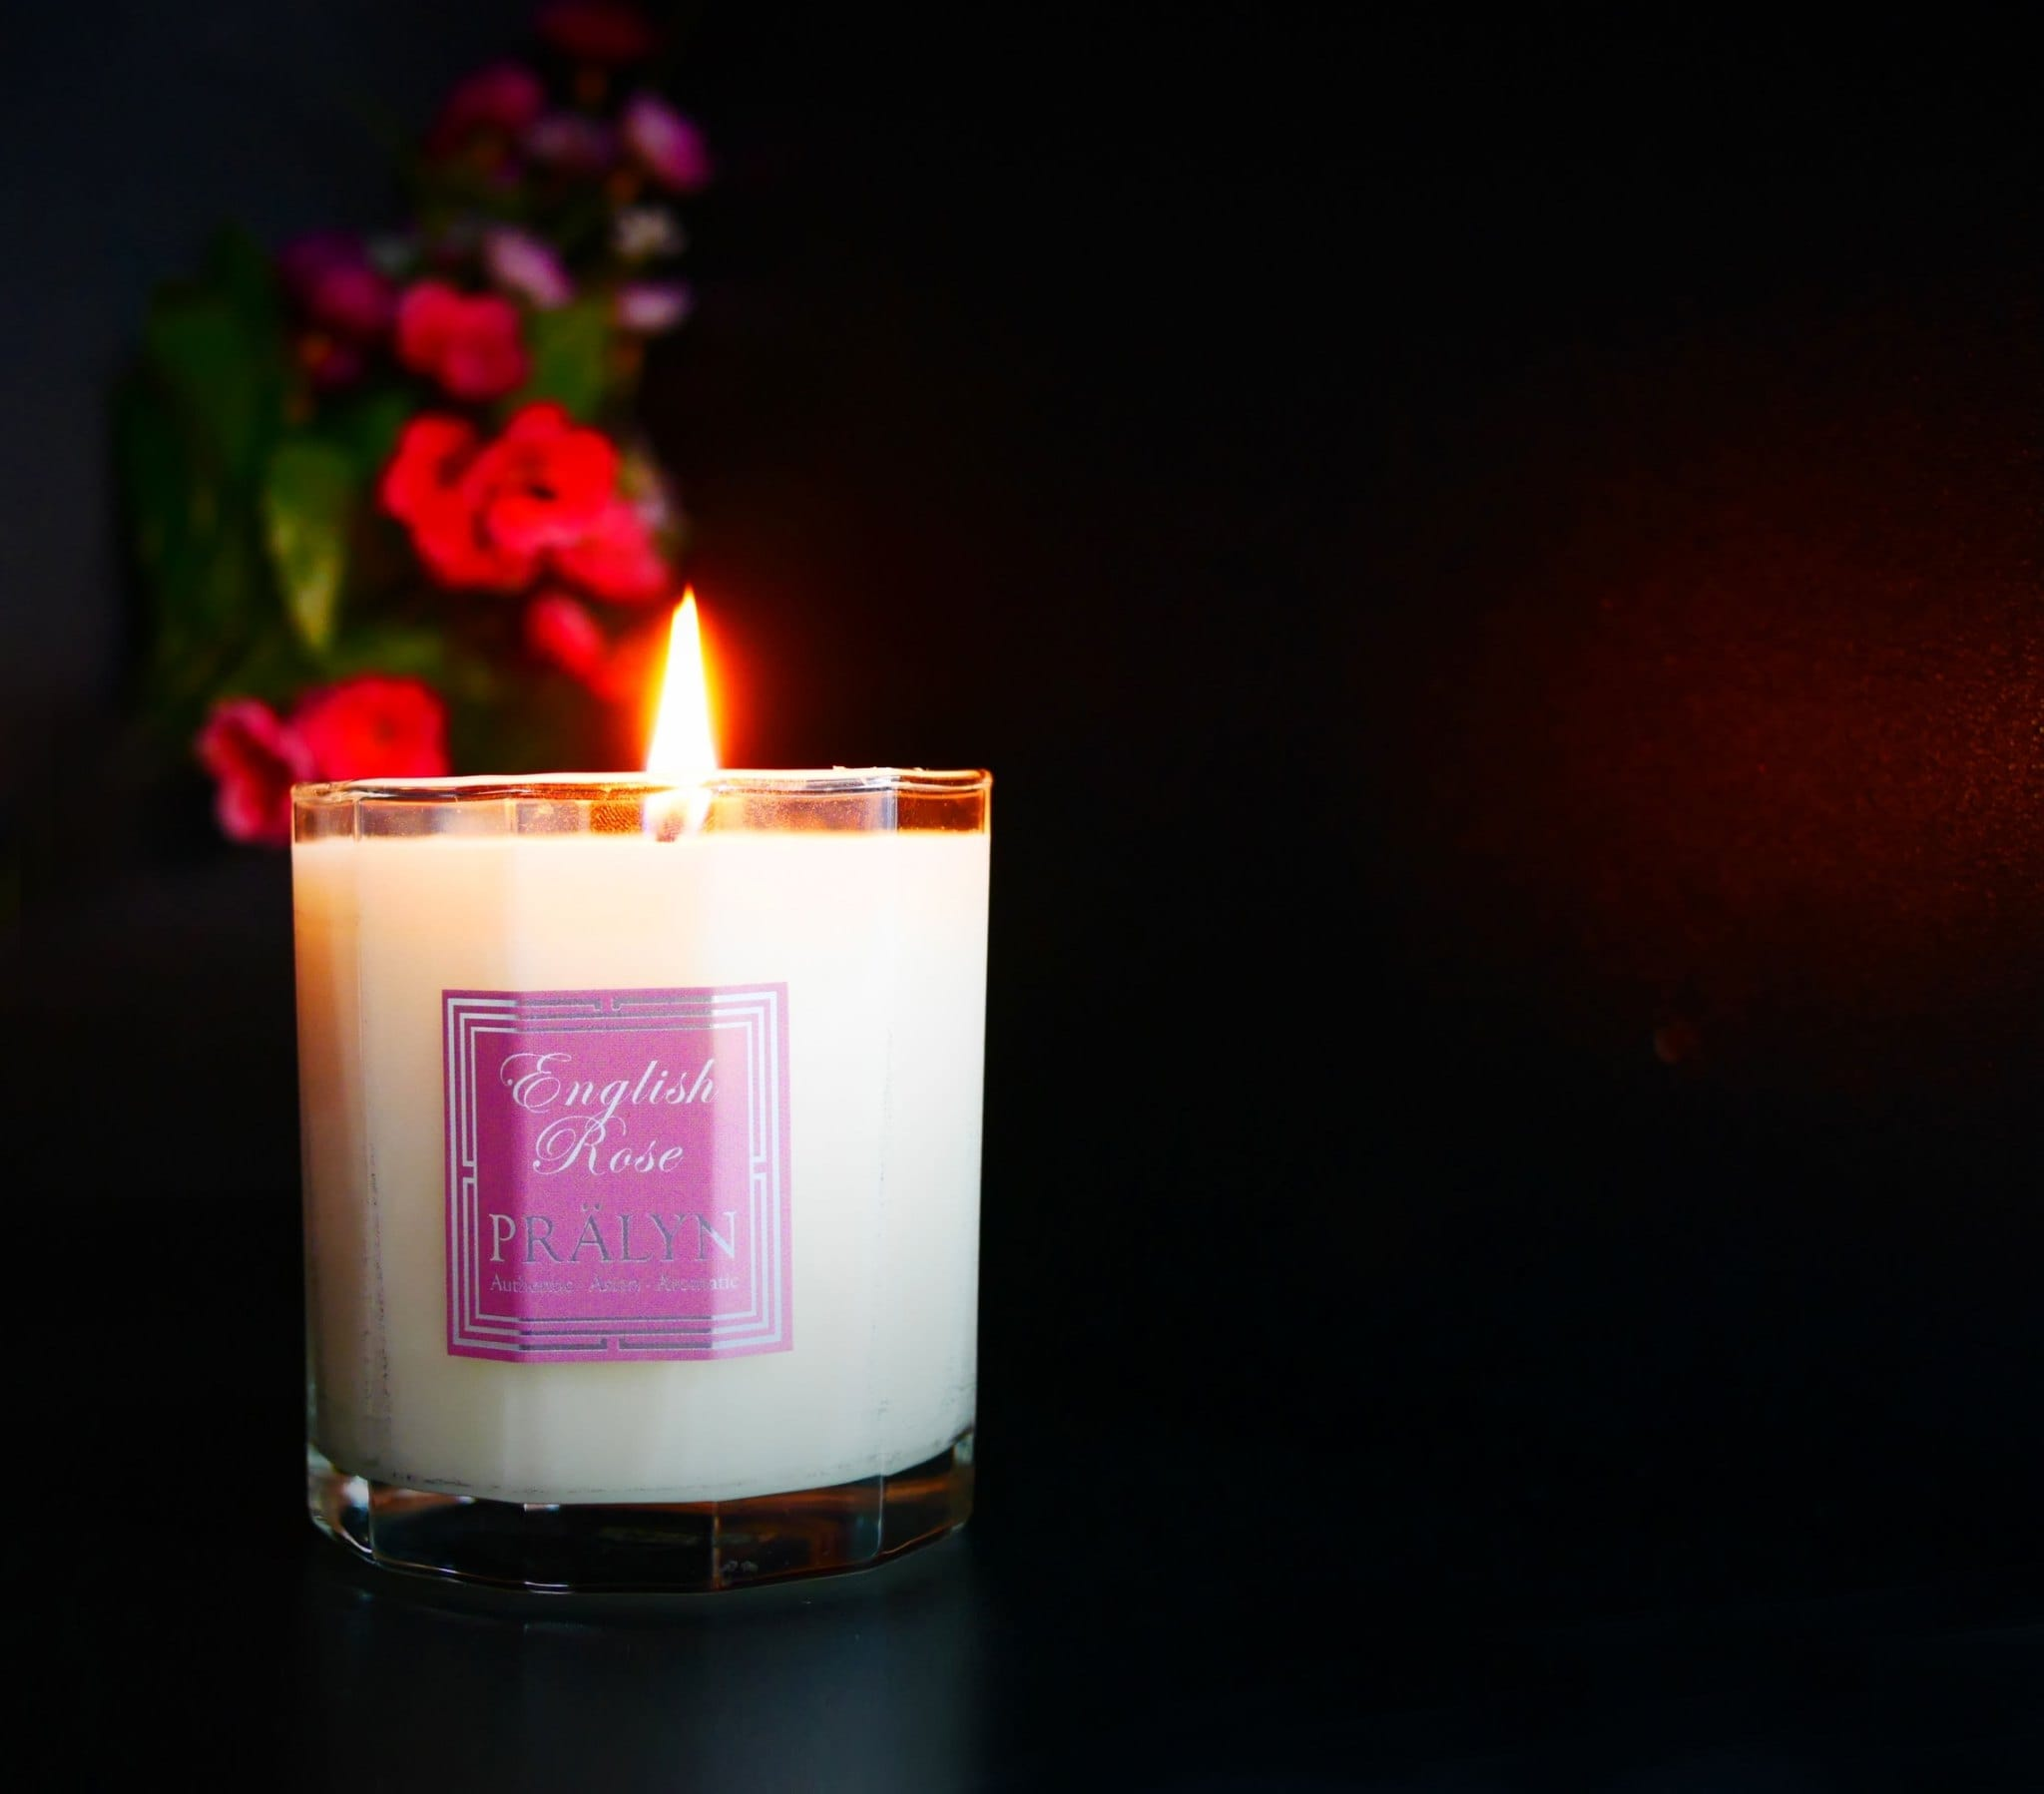 Pralyn, Pralyn English rose, pralyn, pralyn English rose, Christmas, Christmas season, Christmas candles, scented candles, aromatic candles,